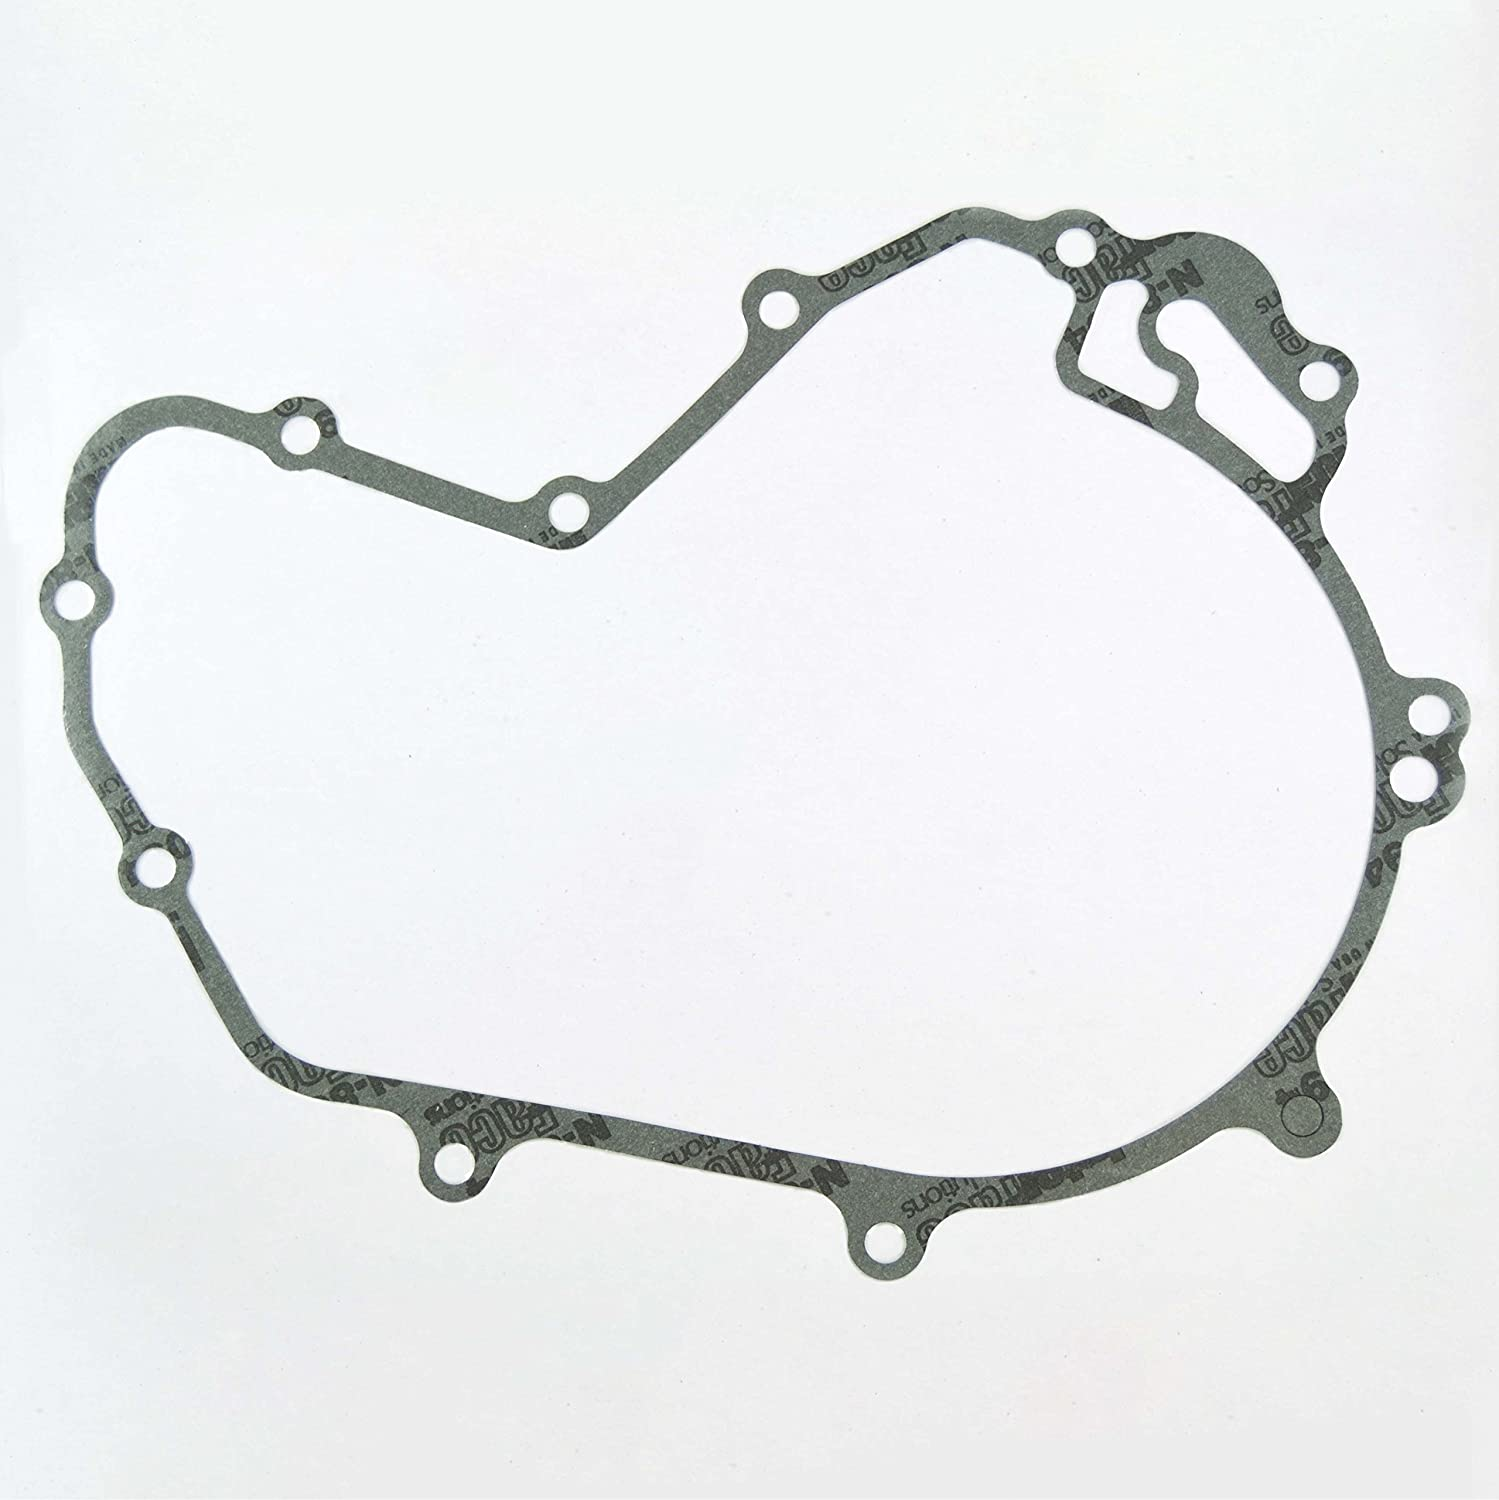 Stator Crankcase Cover Gasket For Can-Am Ski Doo Lynx Commander Outlander Maverick Renegade Legend Skandic 2006 2007 2008 2009 2010 2011 2012 2013 2014 2015 2016 OEM Repl.# 420651200